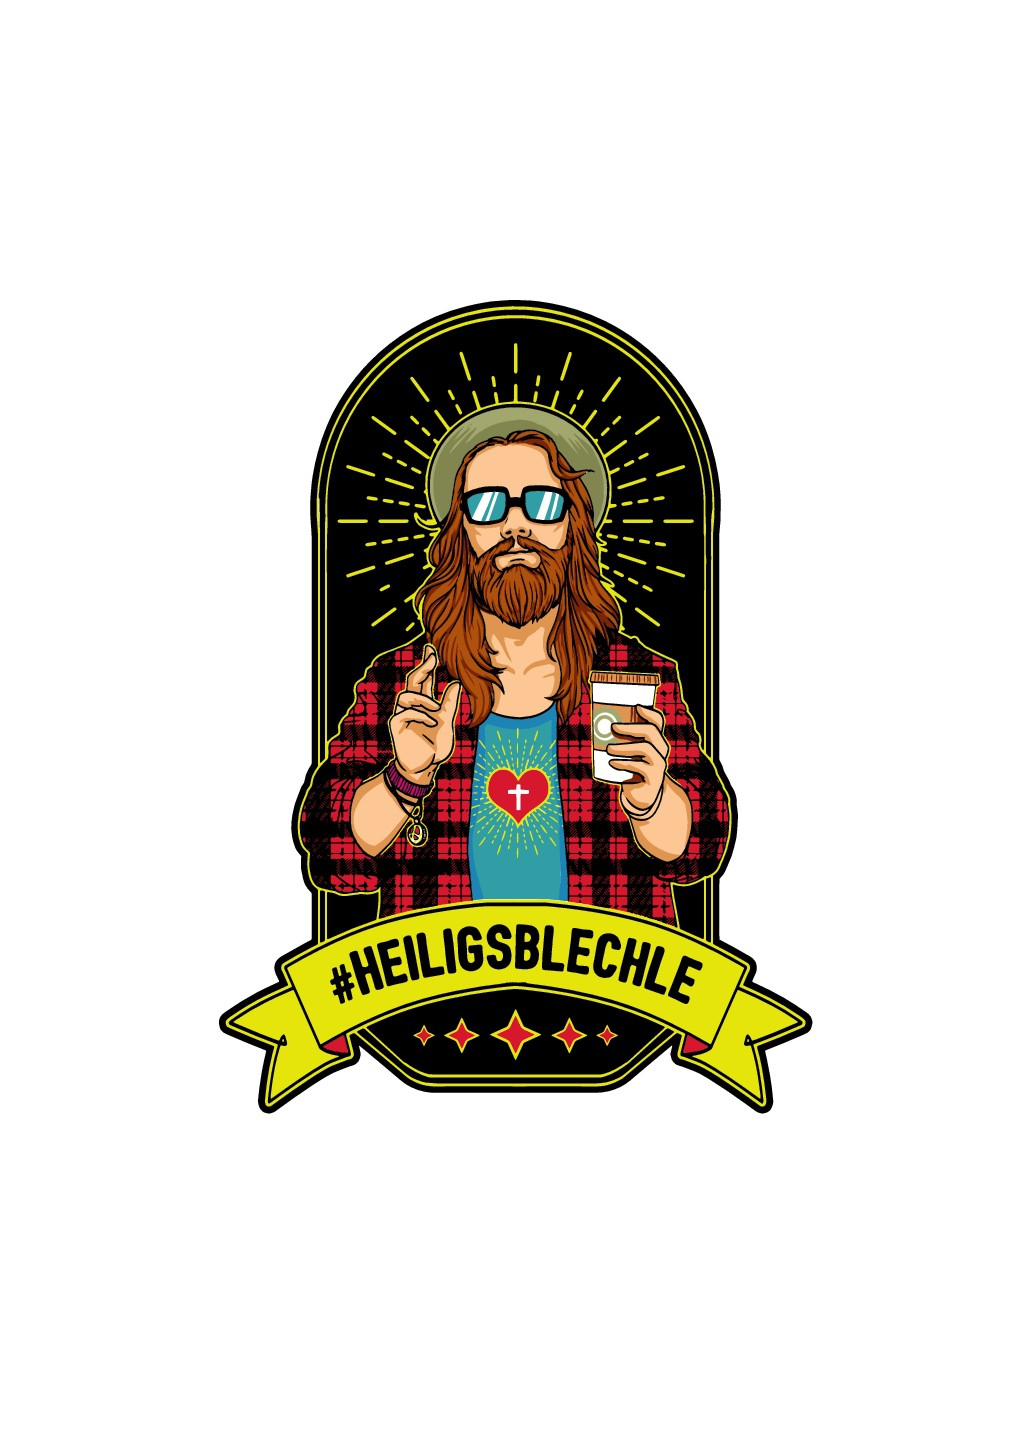 Hipster Jesus design for a drinkbottle